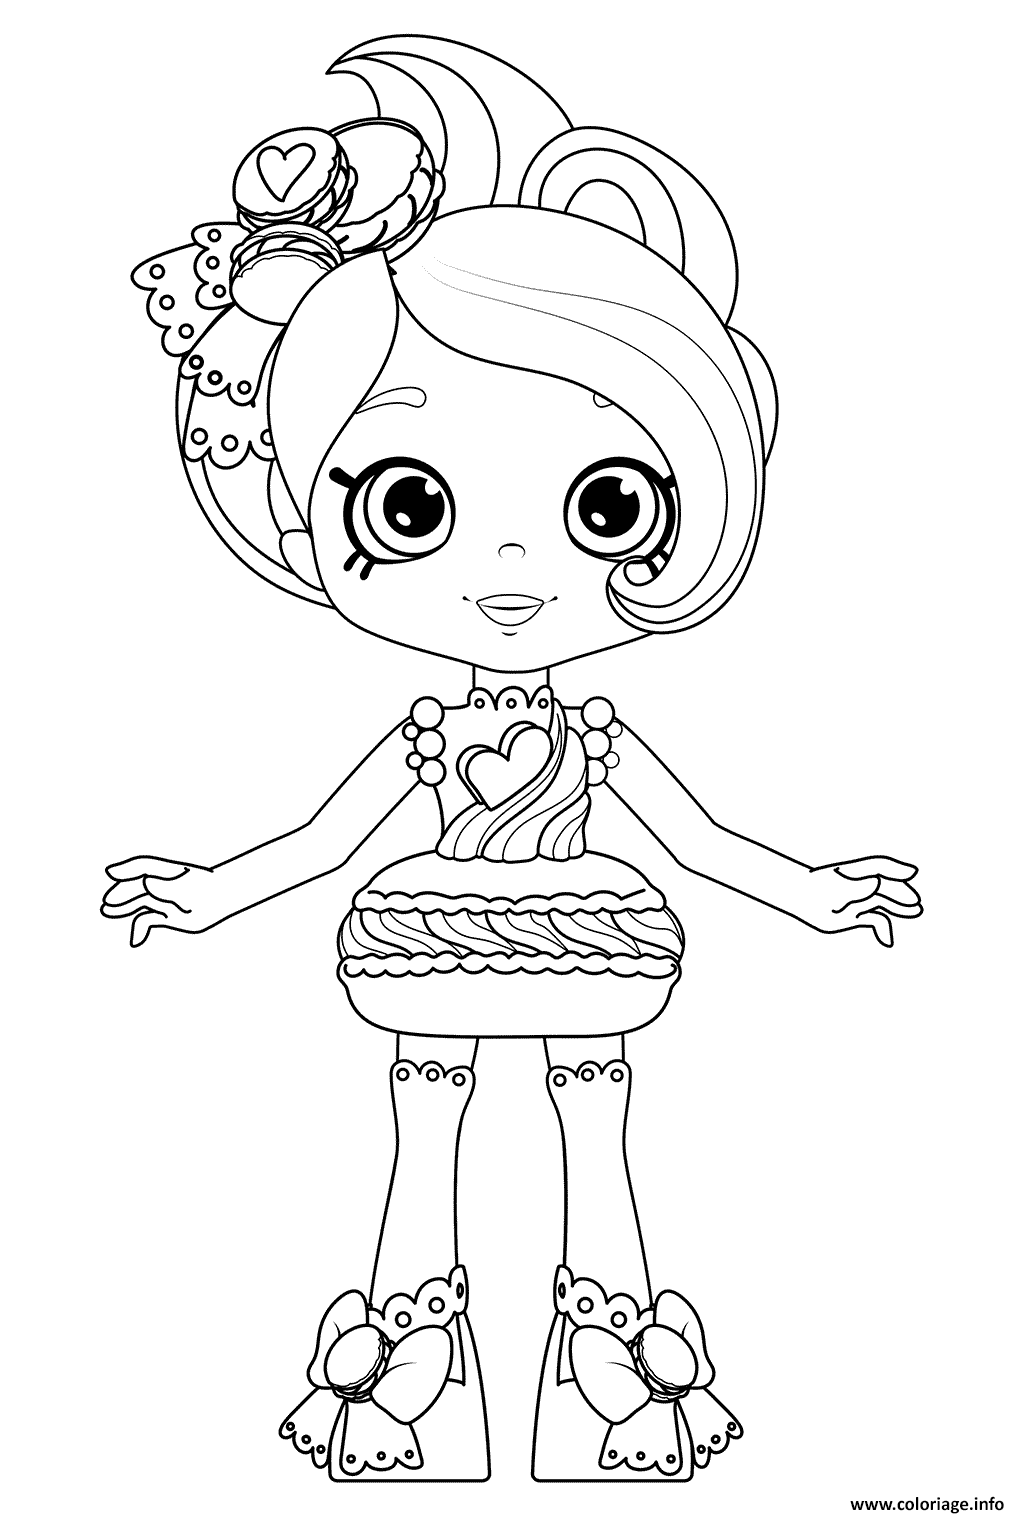 Coloriage Macy Macaron From Happy Places Kitty Kitchen Print And Color Dessin à Imprimer